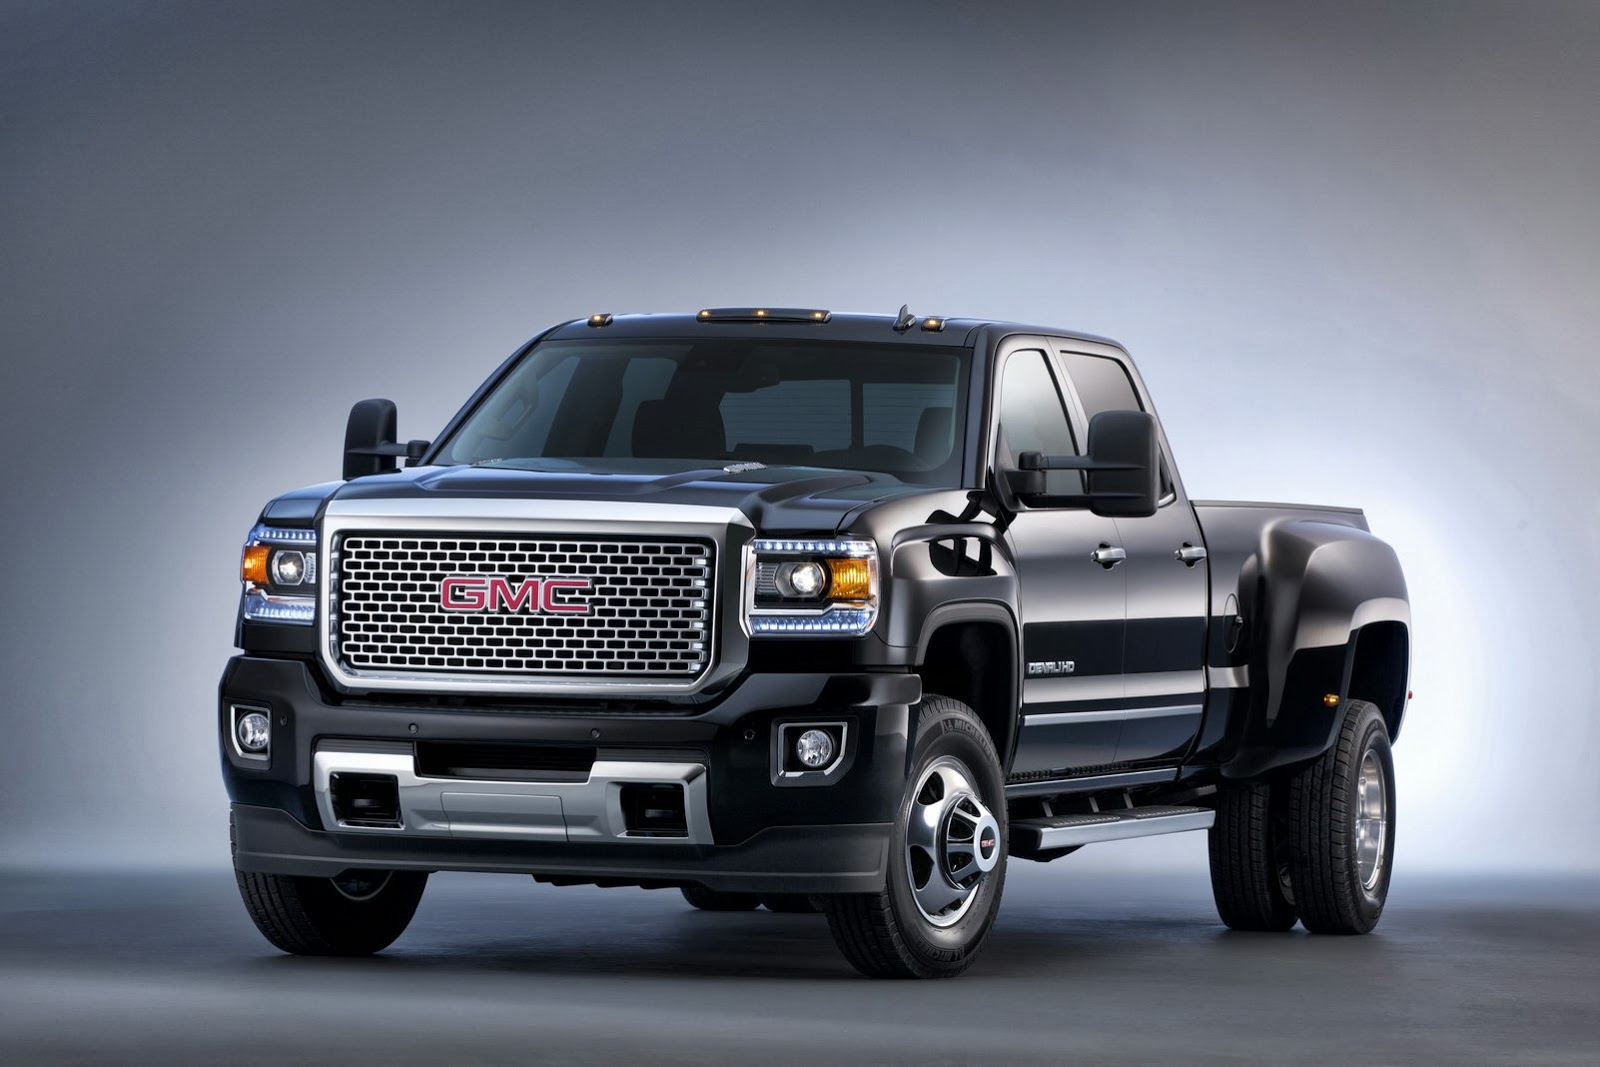 2014 GMC Sierra 1500 Gets 6-inch Lift Kit from Rancho - autoevolution